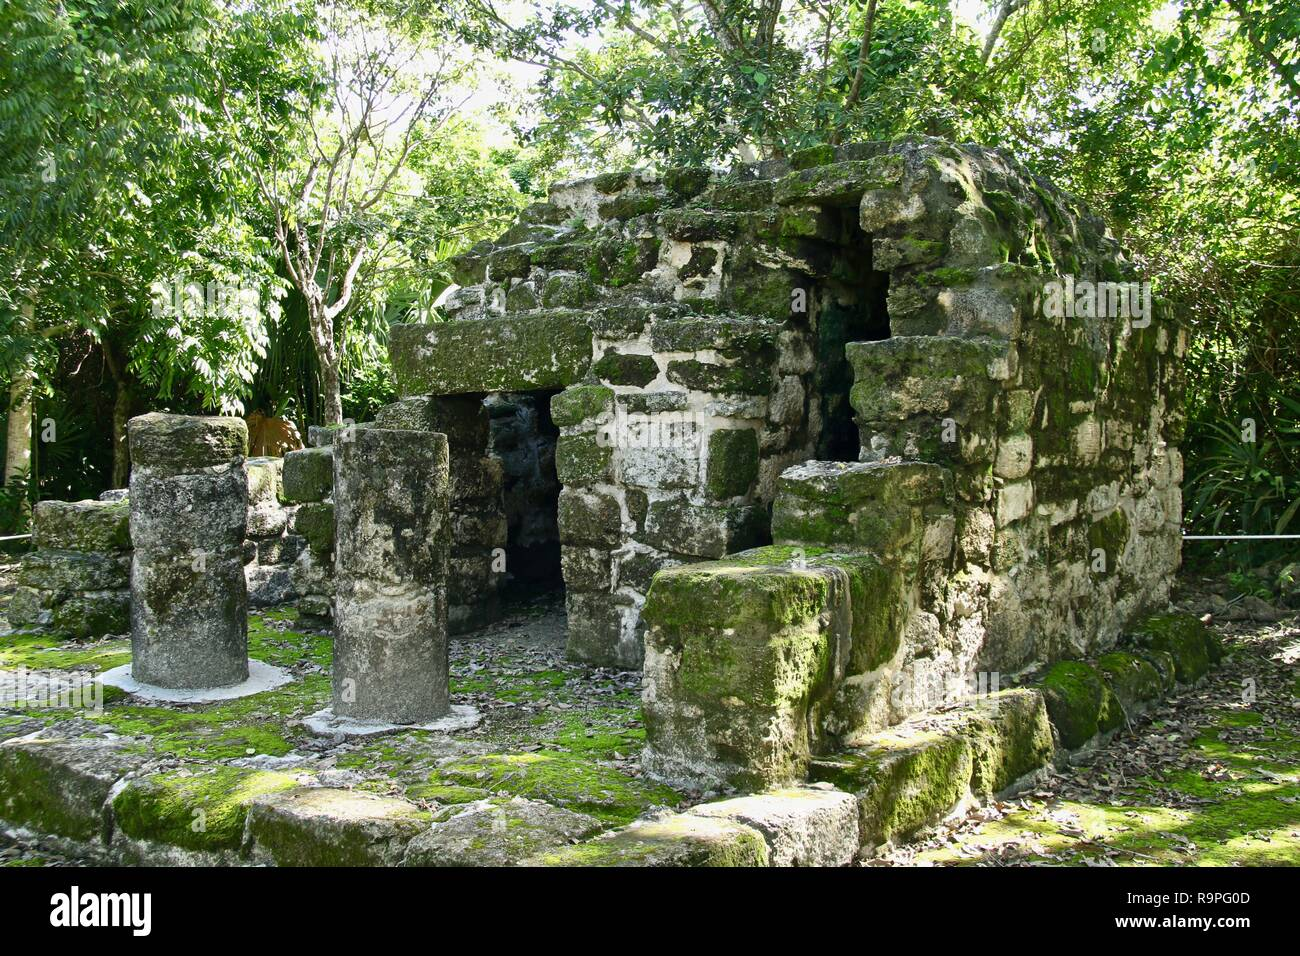 Mayan ruins in the jungles of Mexico showing the Maya empire - Stock Image